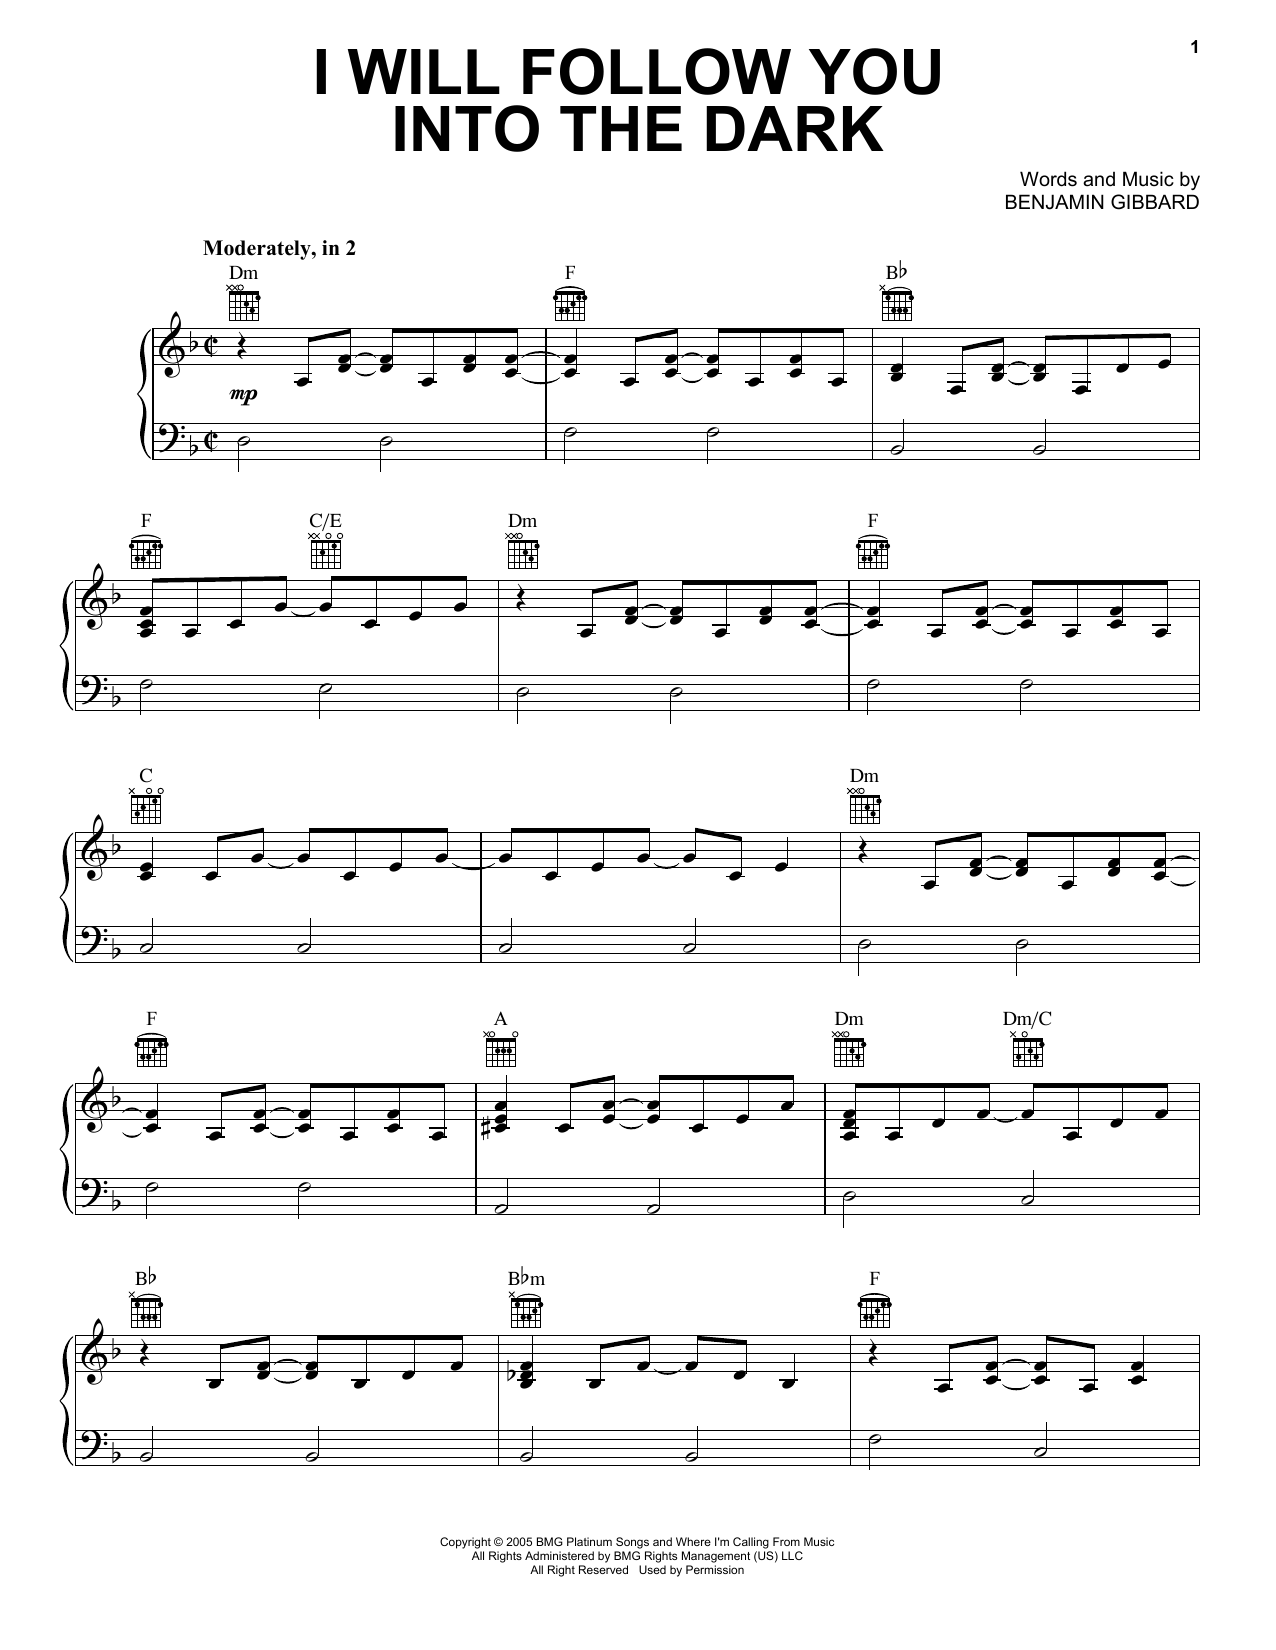 I Will Follow You Into The Dark | Sheet Music Direct